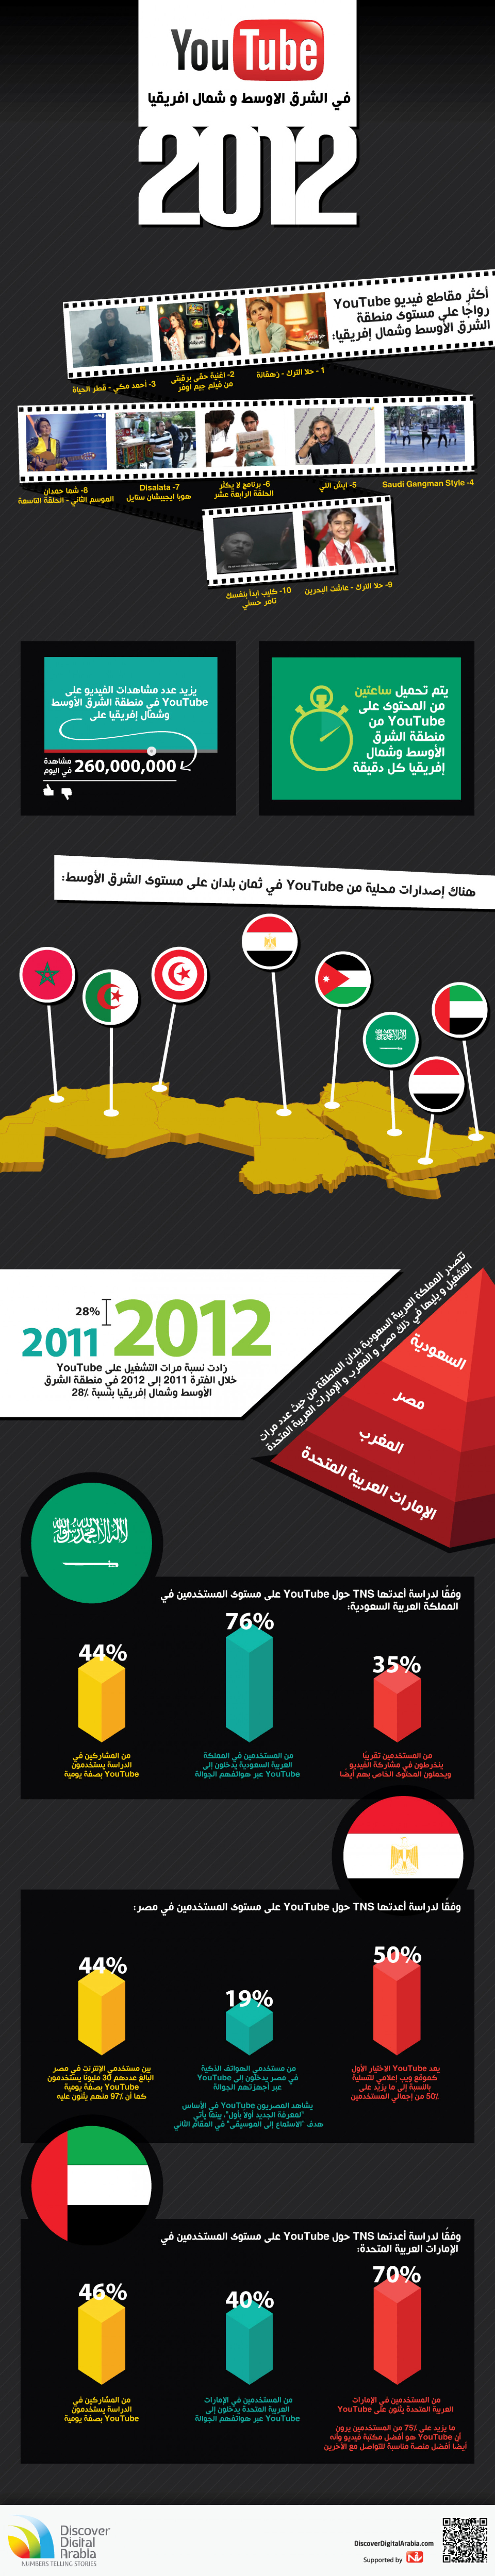 YouTube 2012 in MENA Infographic